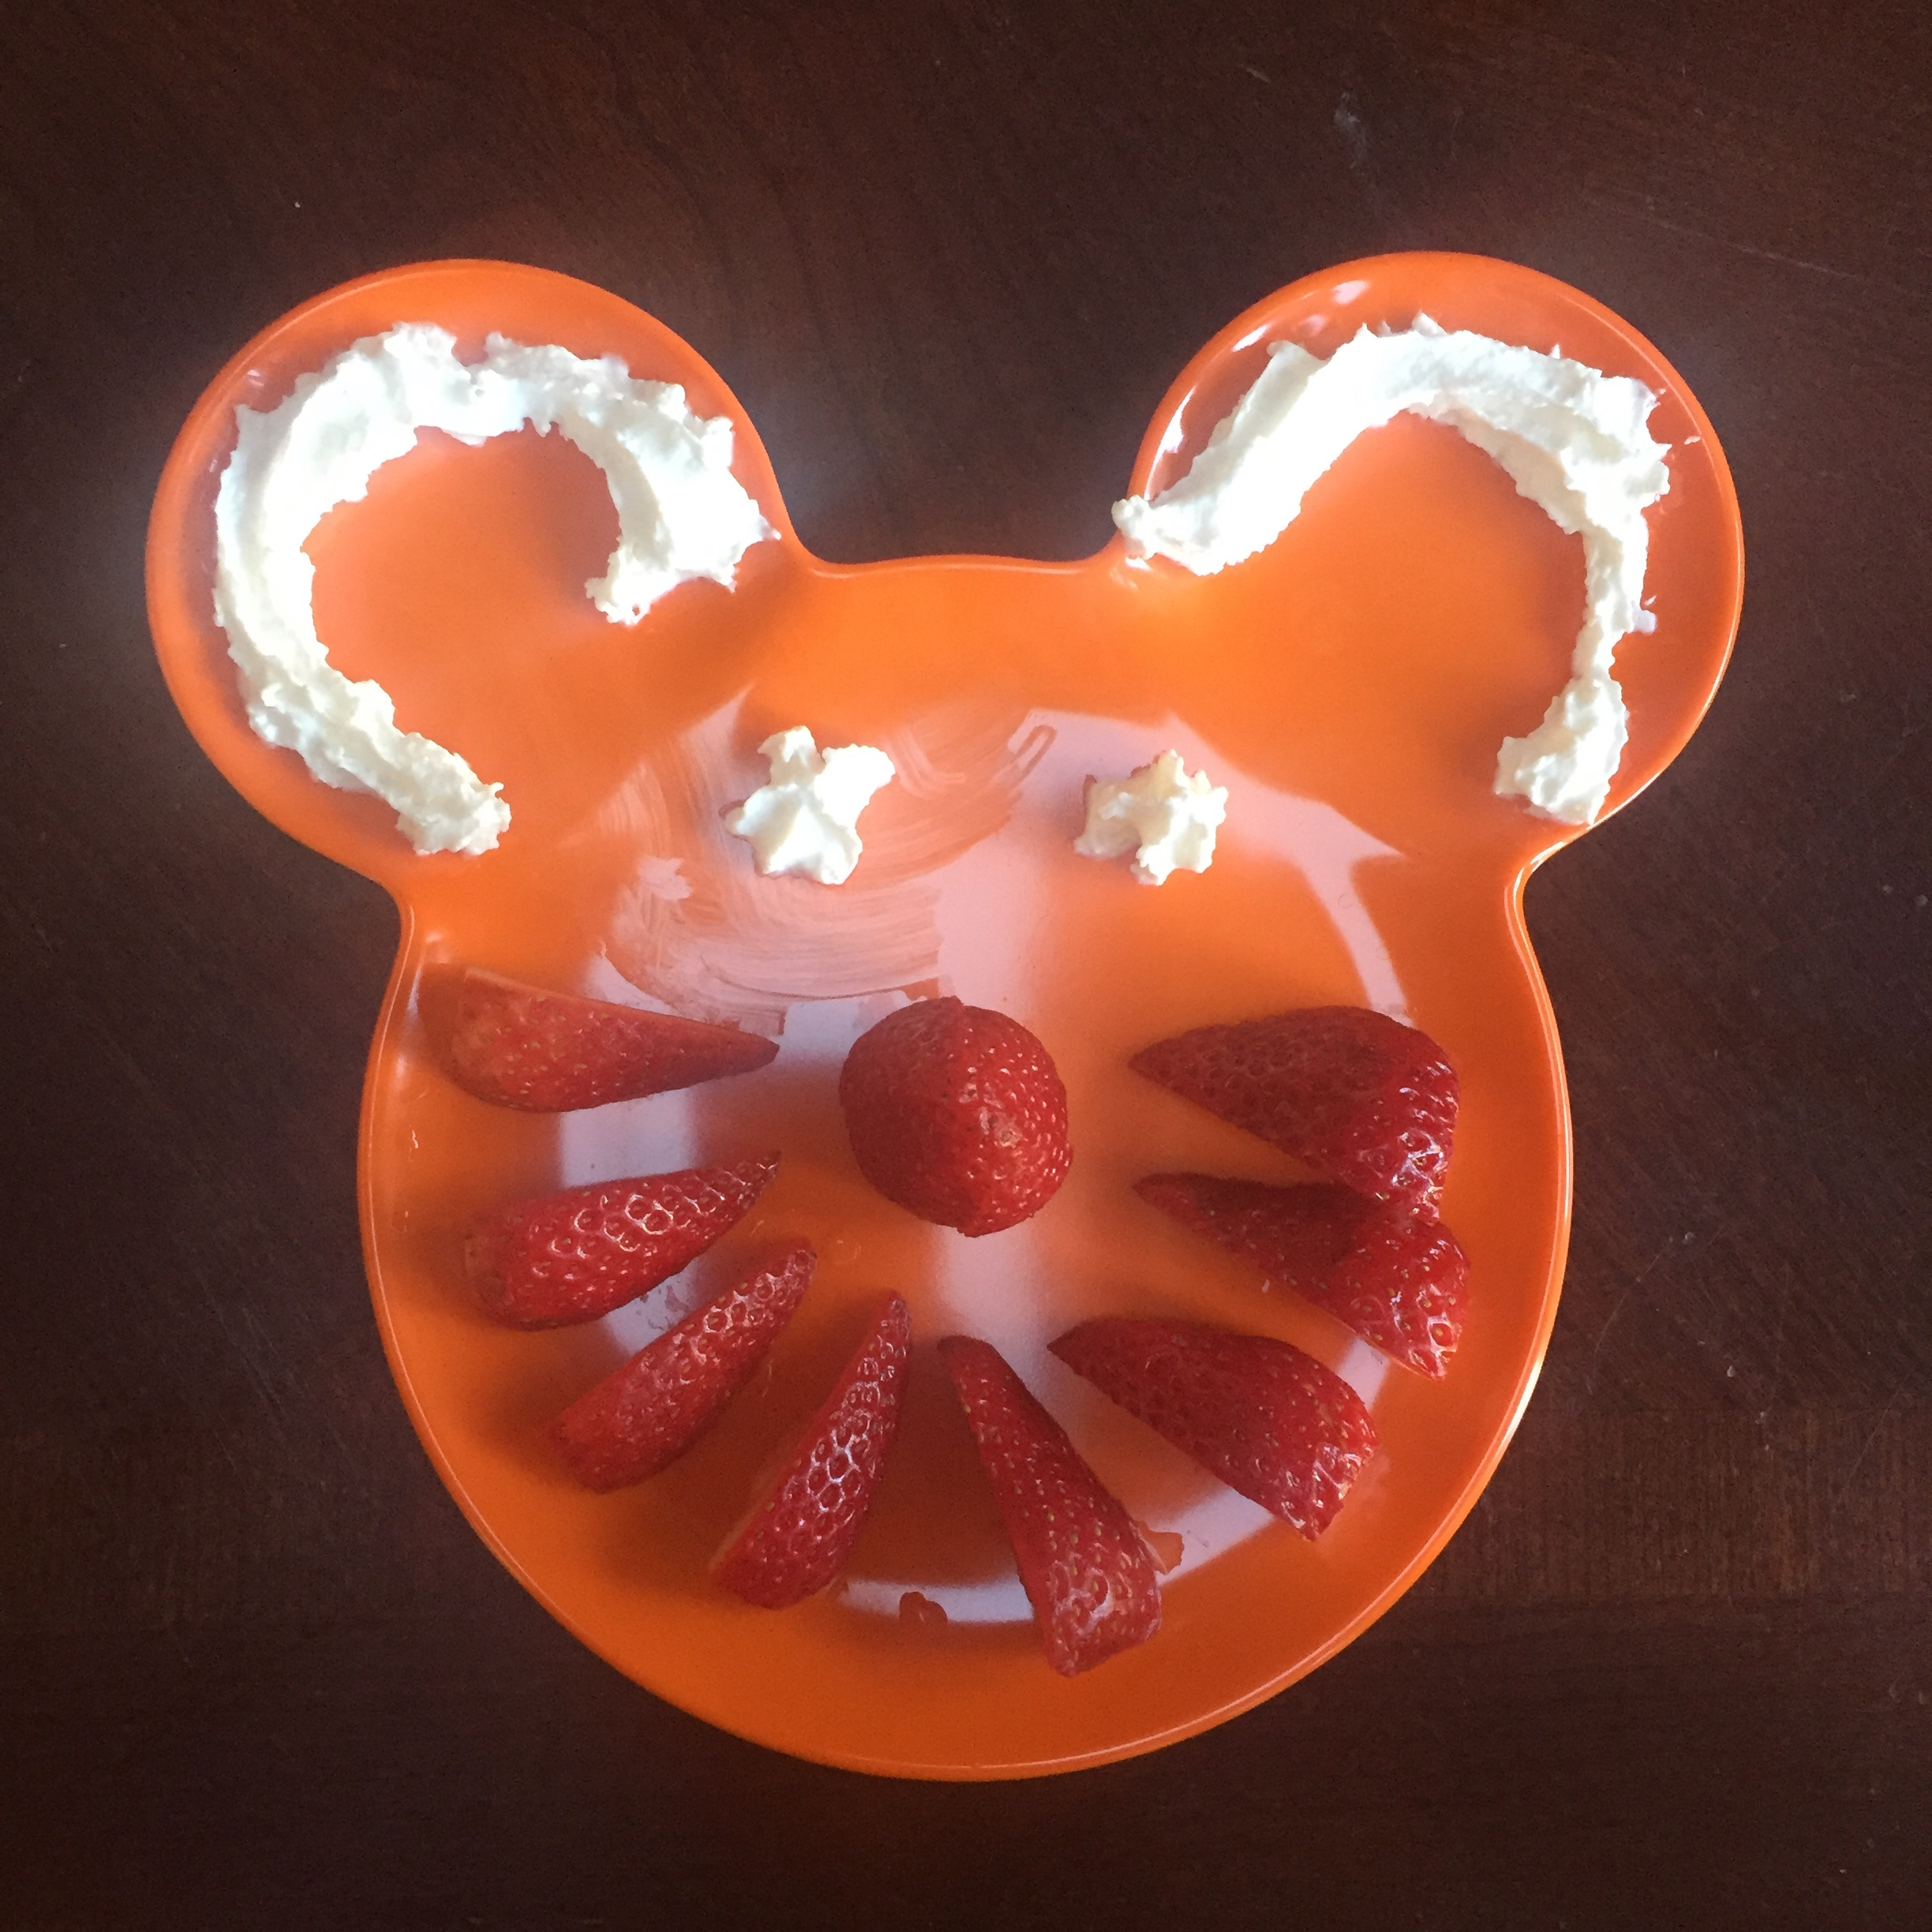 Cut up strawberries sliced and arranged on orange Mickey Mouse head shaped plastic kids' plate with whipped cream for eyes and ears